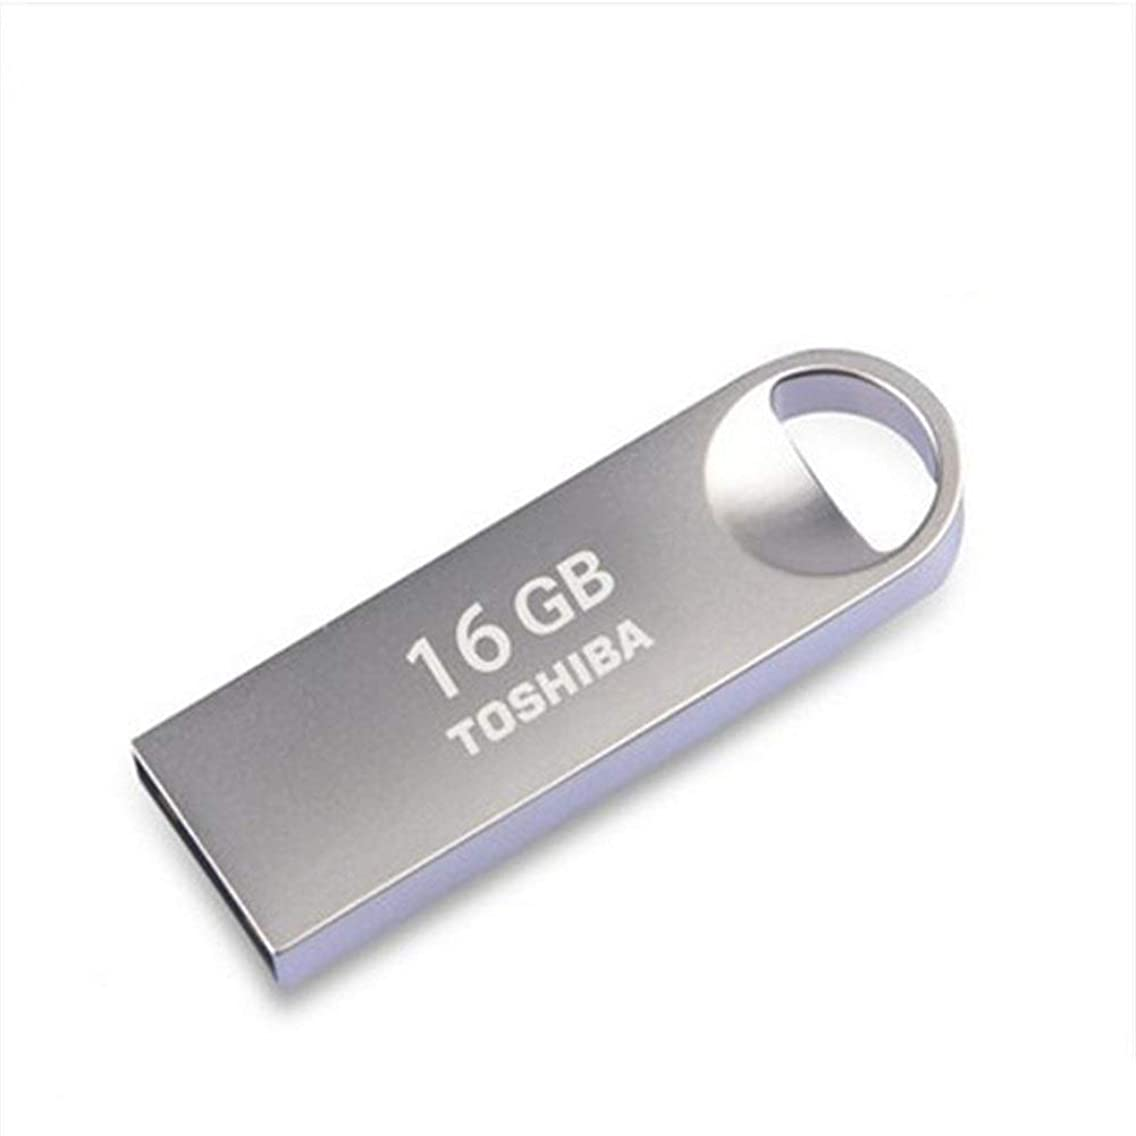 MUZIWENJU USB Flash Drive, 8gb/16gb/32gb/64gb, USB2.0 Memory Stick, Metal Waterproof Flash Drive, Silver (Capacity : 16GB)